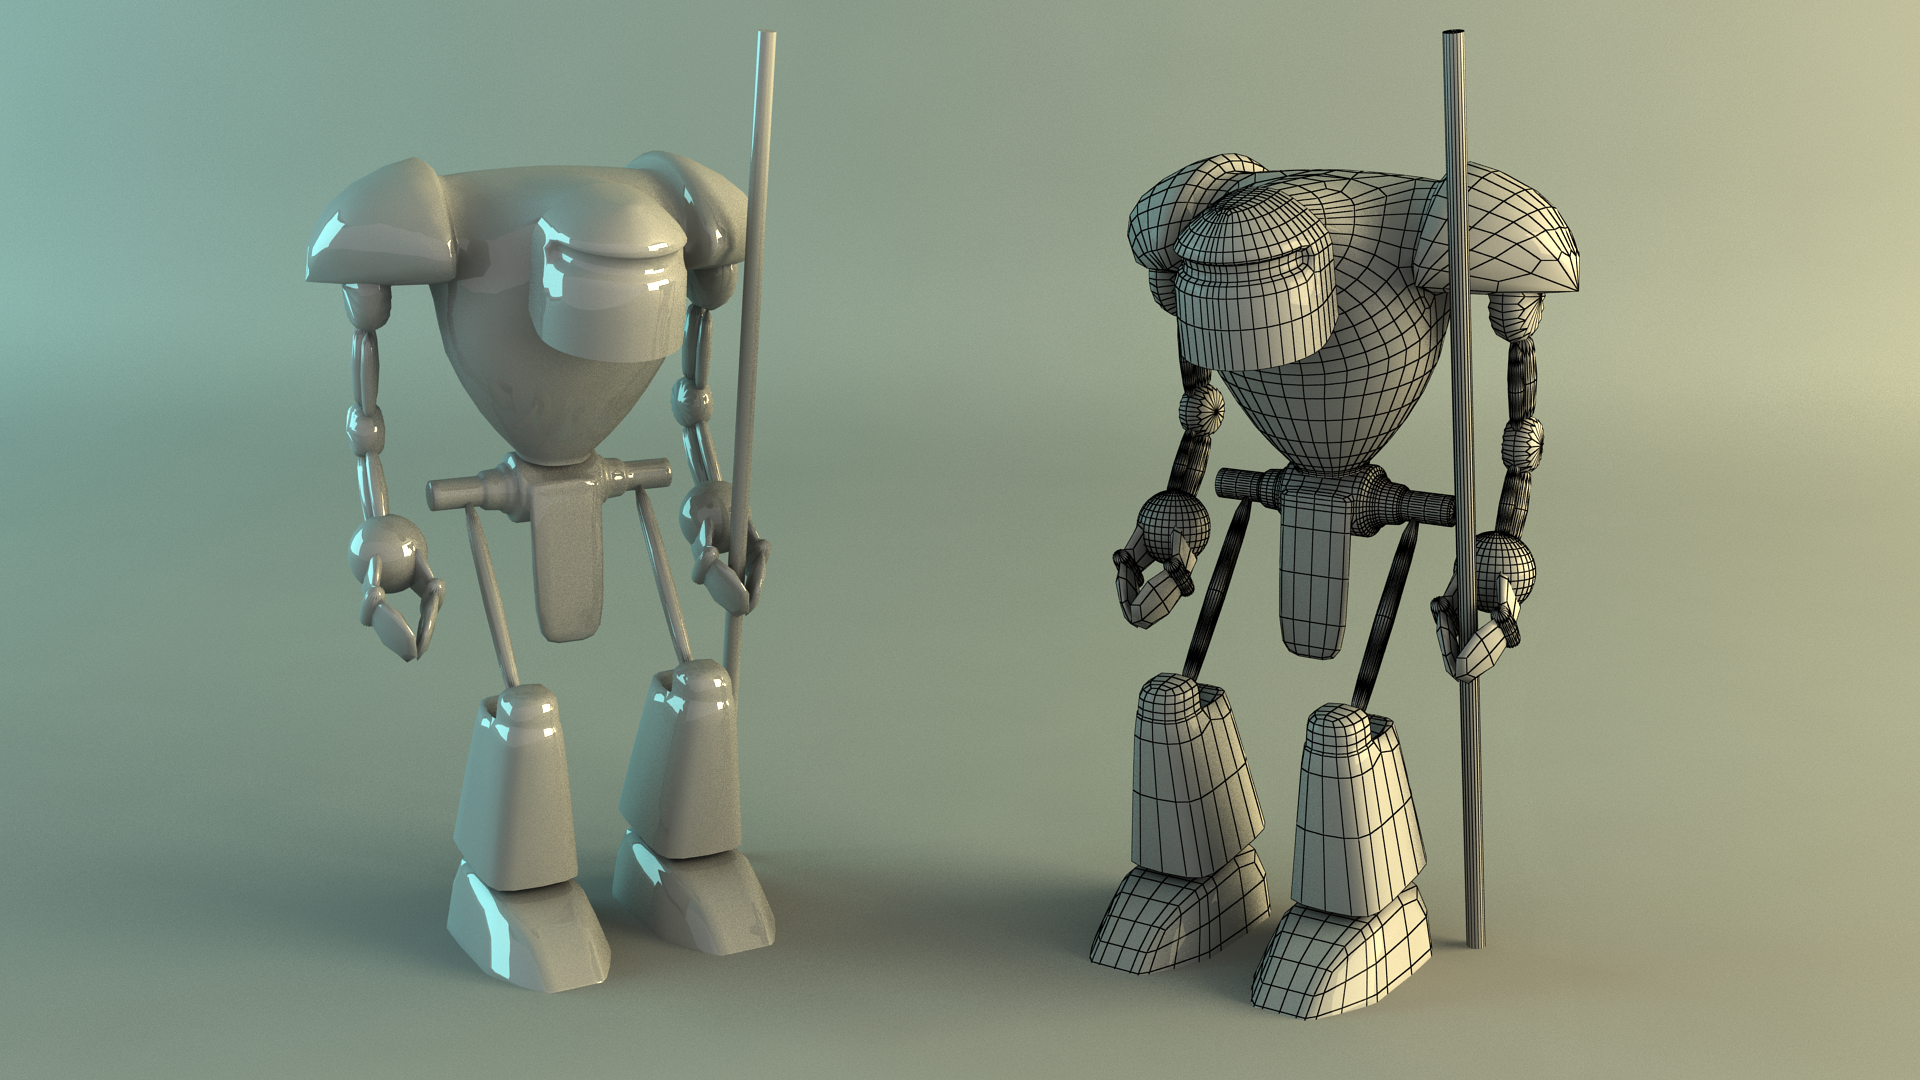 Robot 3D Model by Stake0113 on DeviantArt